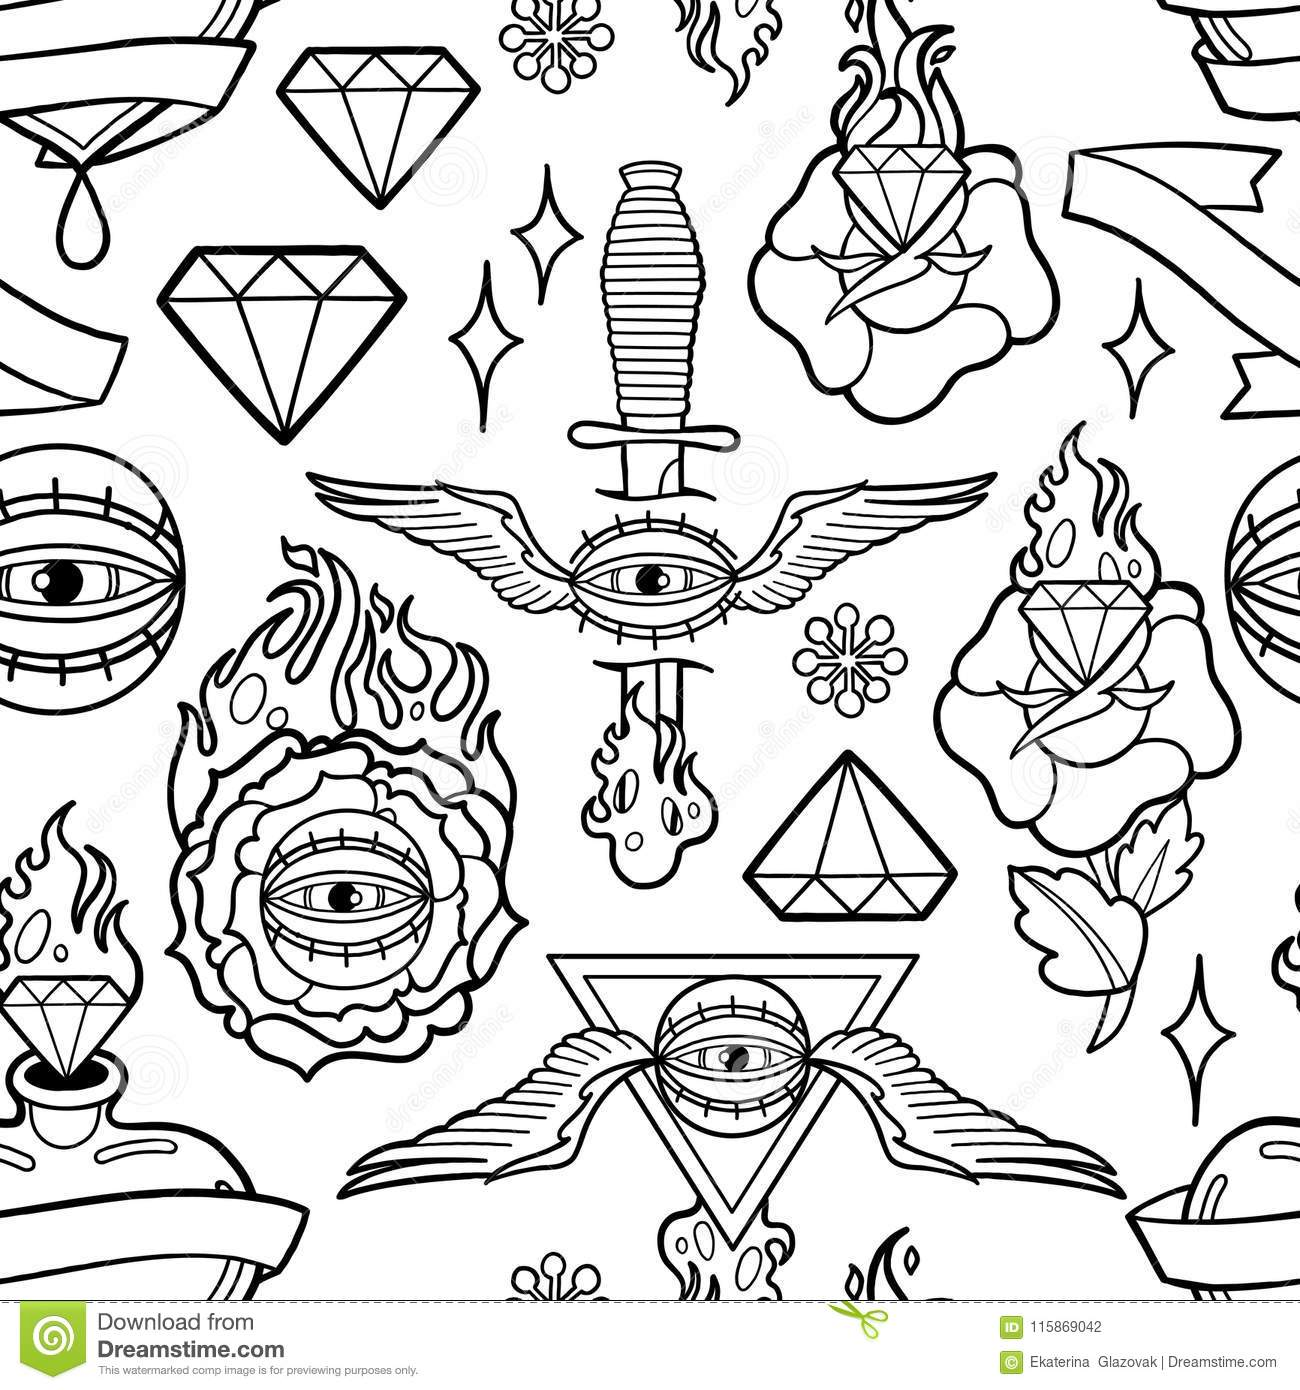 graphic old school pattern collection different patches inspired tattoo arts traditional design vector seamless coloring